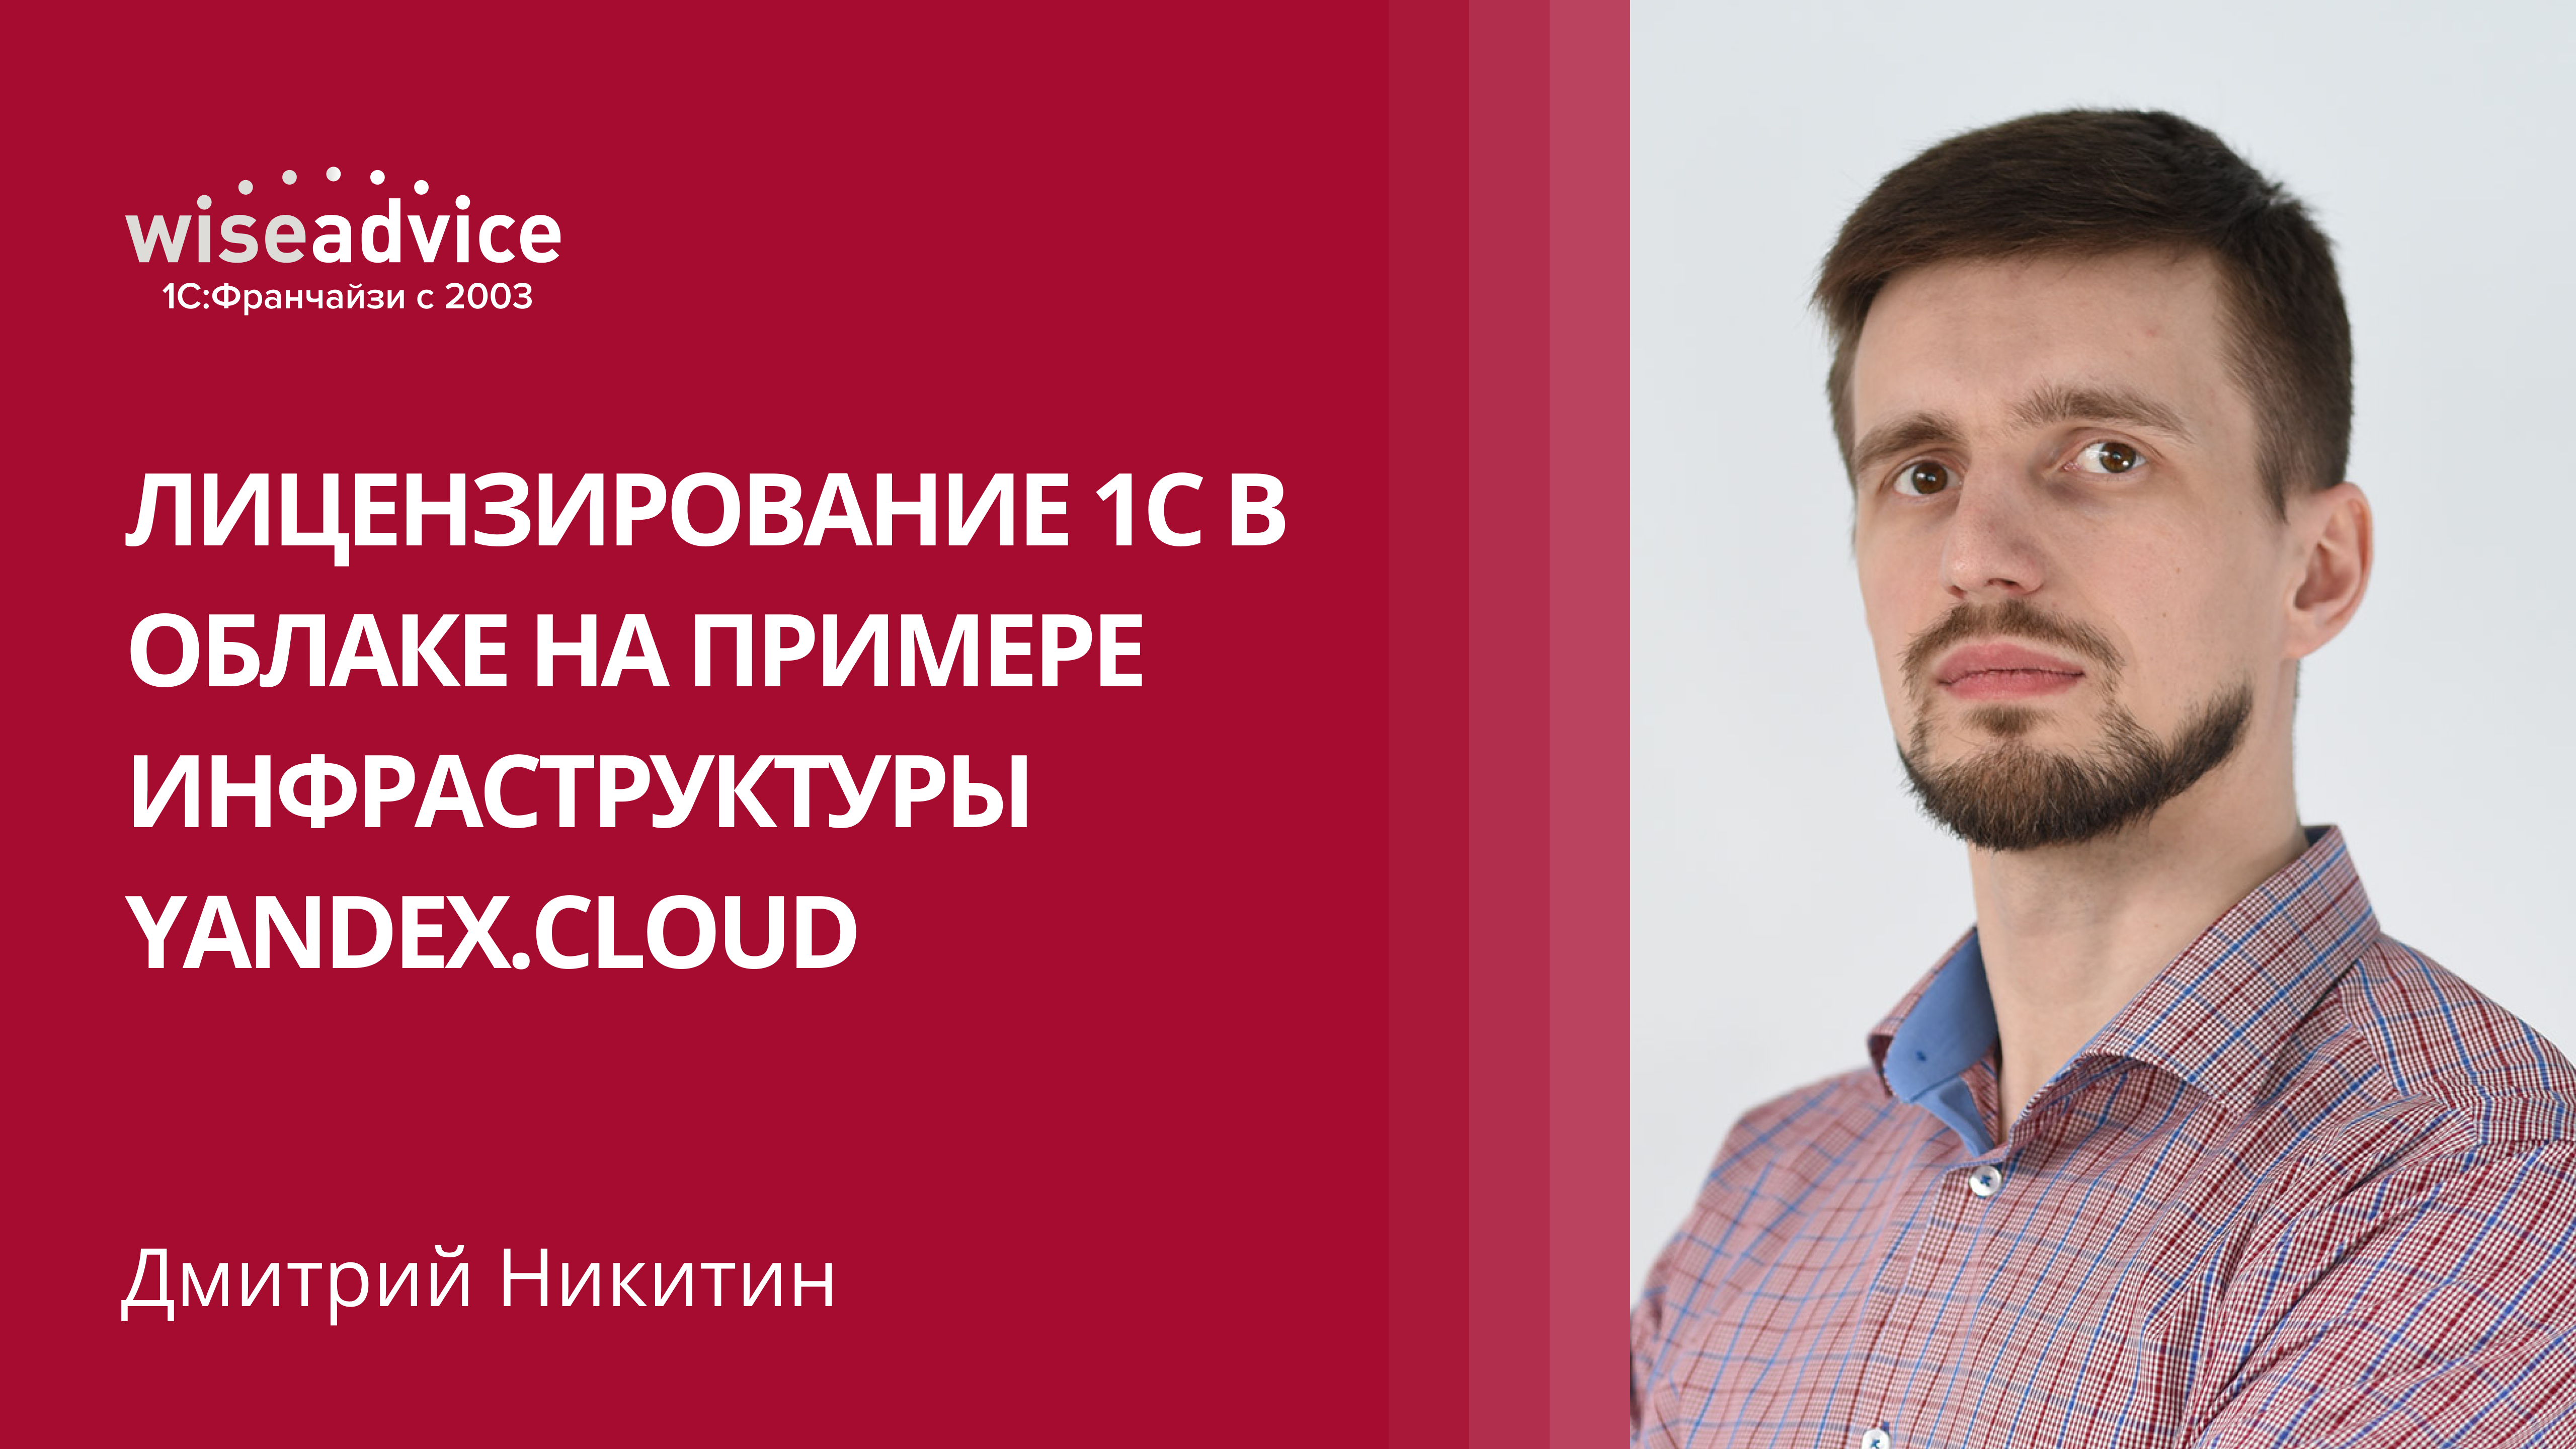 Лицензирование 1С в облаке на примере инфраструктуры Yandex.Cloud